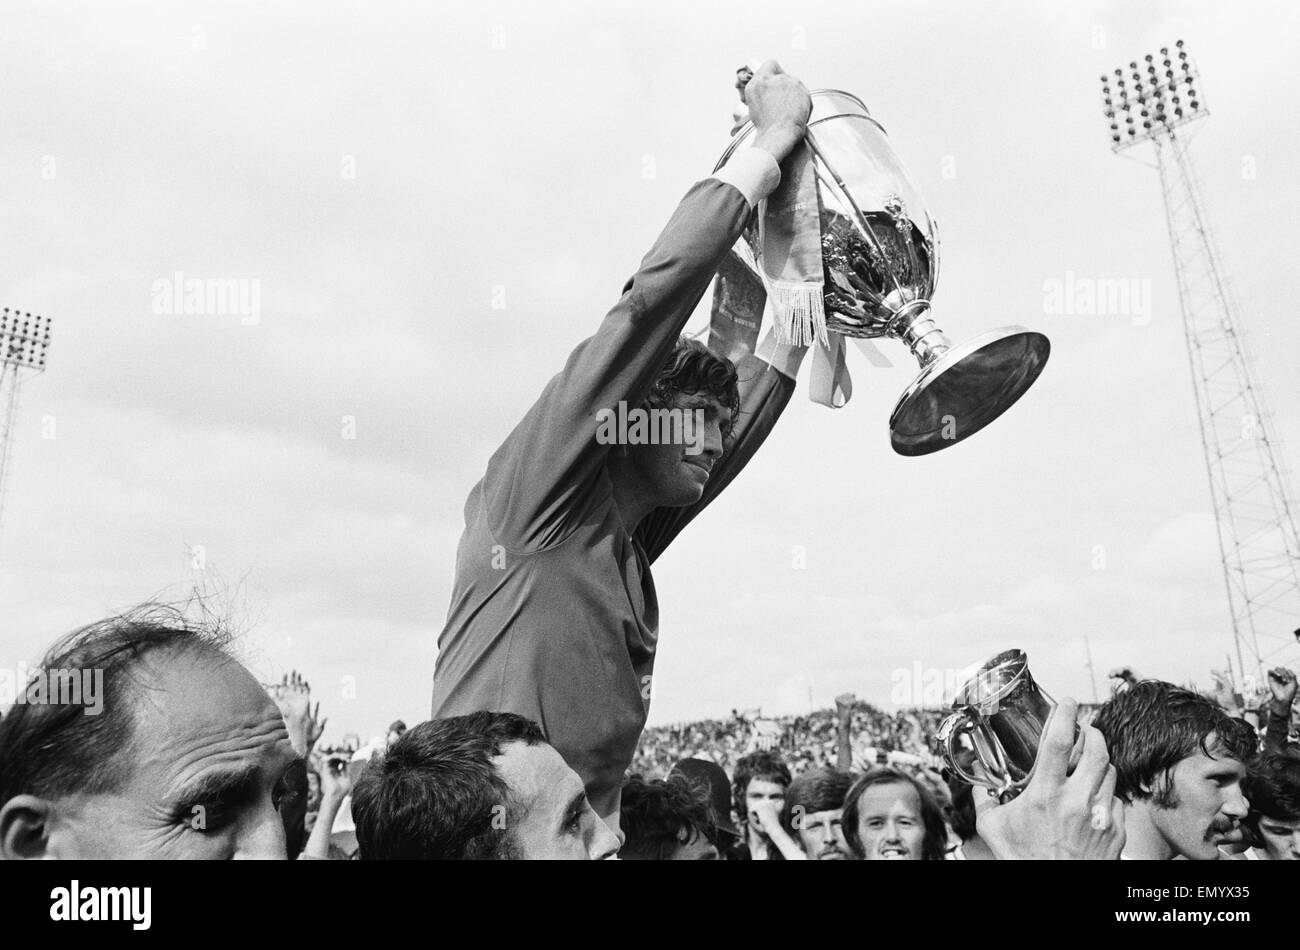 Watney Mann Cup match at the Eastville Stadium. Bristol Rovers v Sheffield United. Bristol Rovers captain Brian - Stock Image